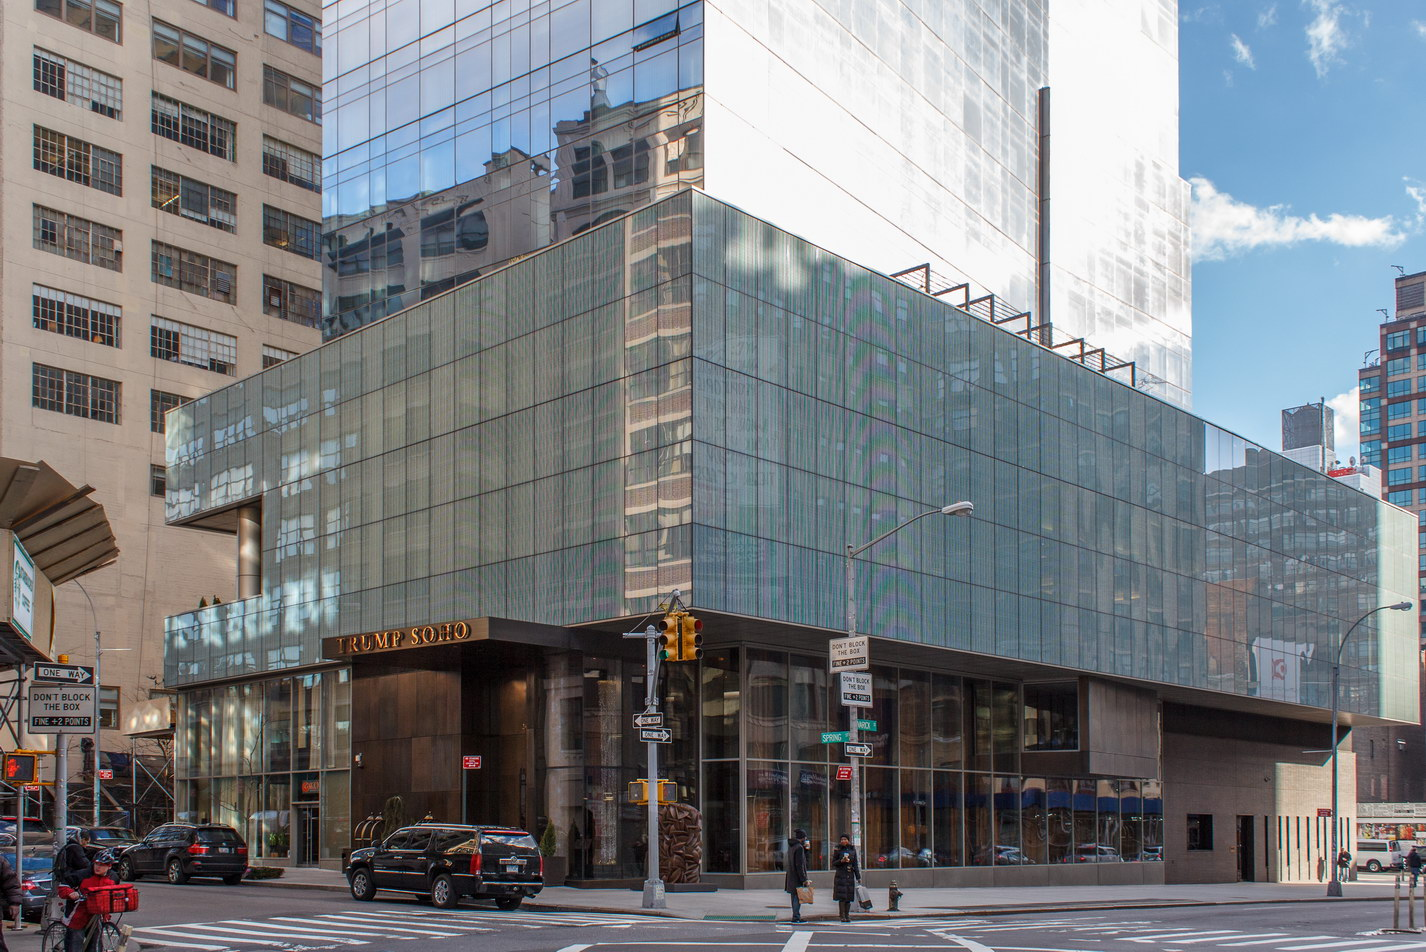 Trump SoHo fills the western end of the block between Spring and Dominick Streets at Varick Street.